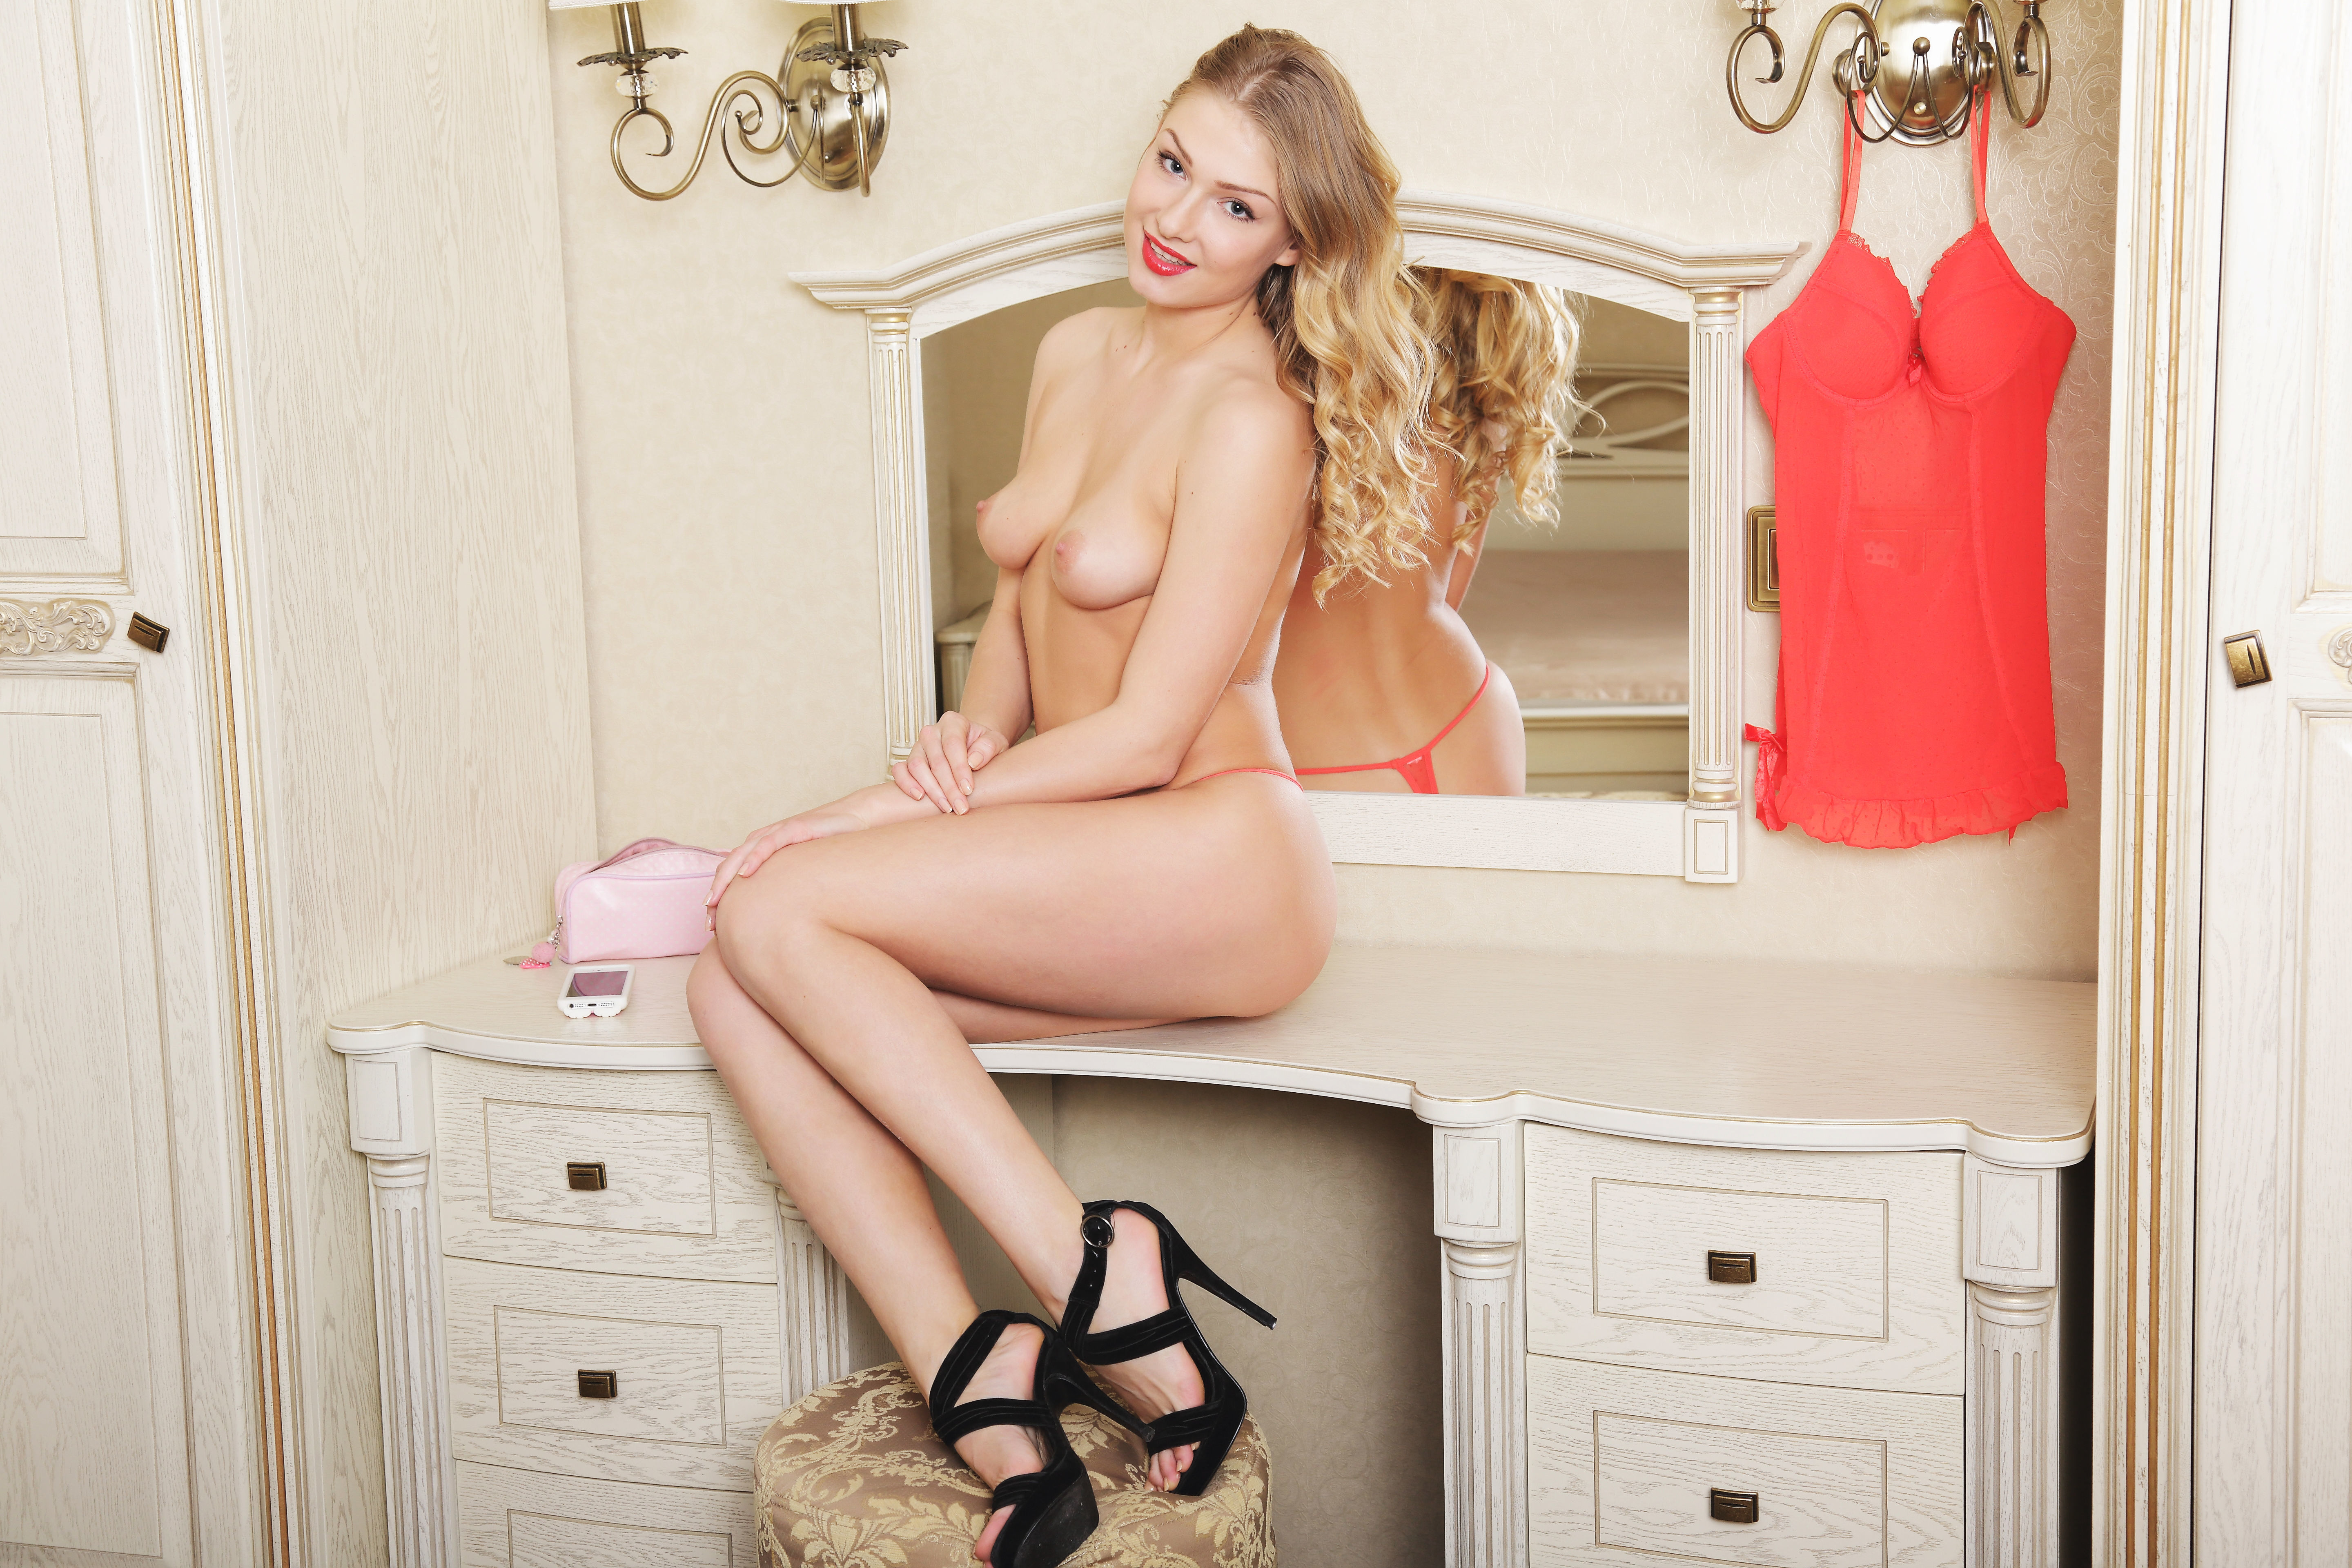 Lucy Heart Strips Off Red Lingerie In Dressing Room 608122 Attractive Blonde Fingers Wet Pussy